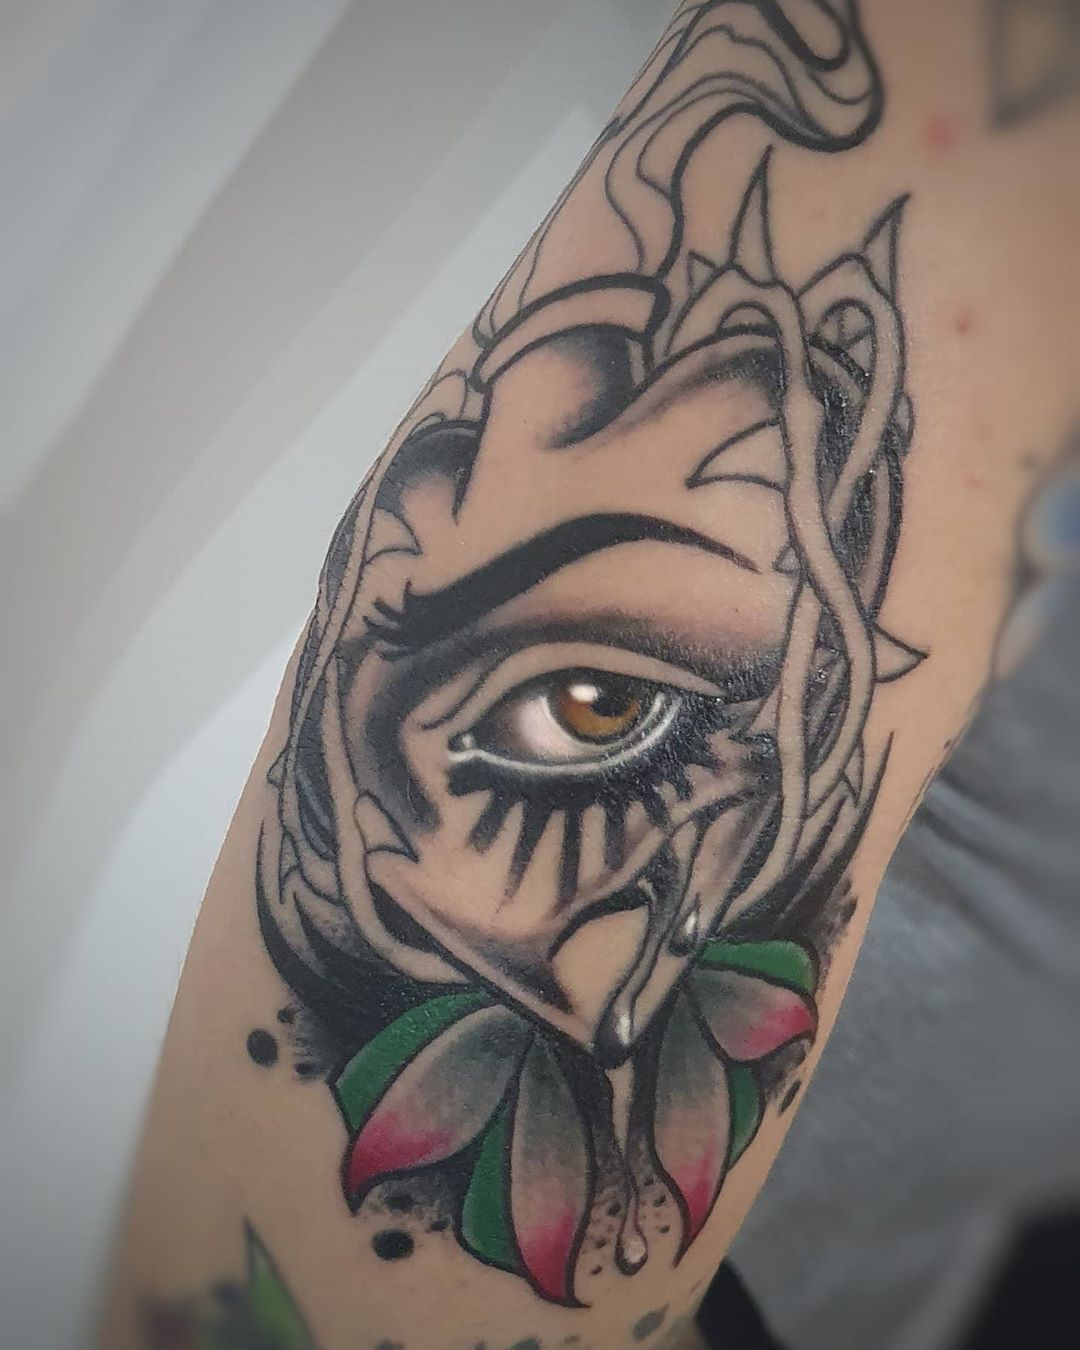 #tattoolife##tattooworkers#tattootracosfinos#tattoostuff#tattooart#tattooink